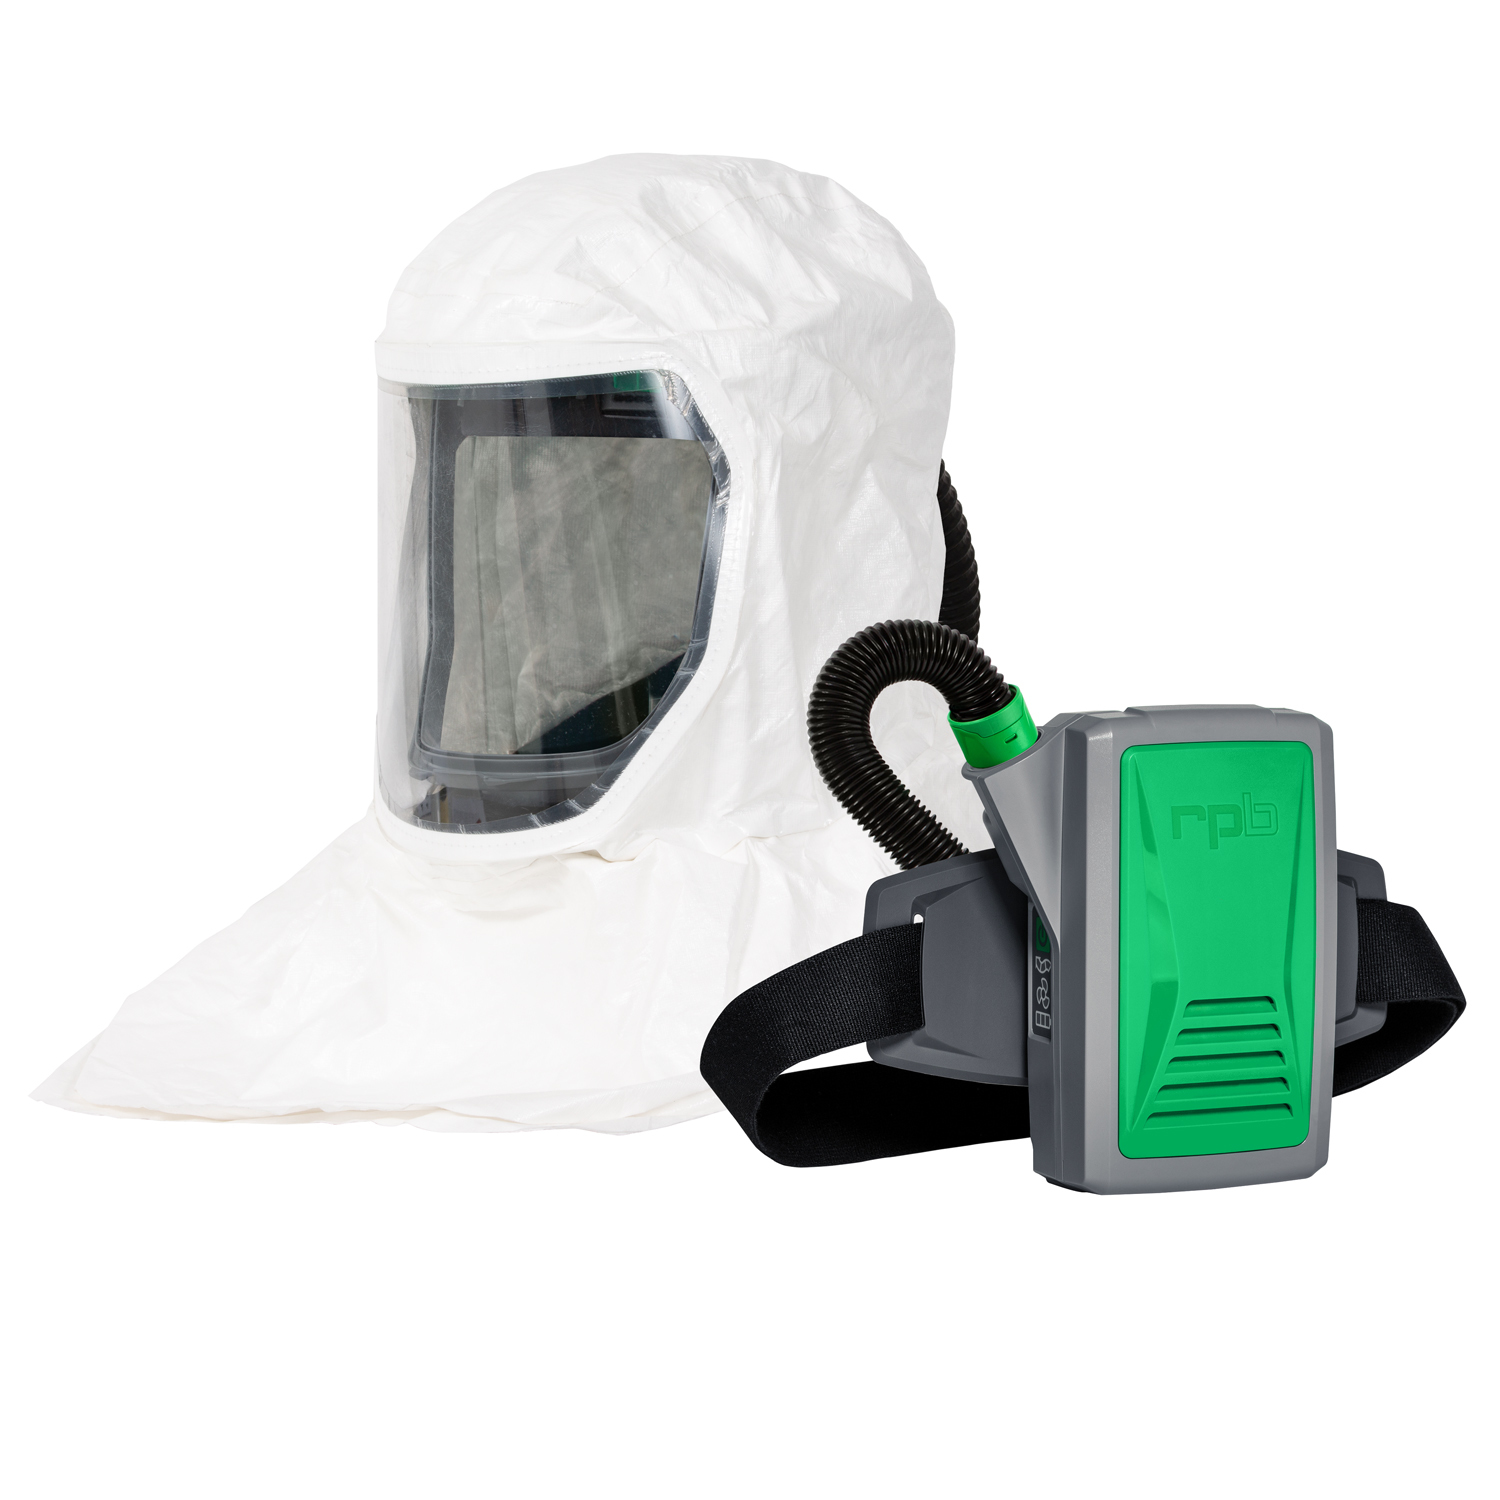 RPB T-link PX5 PAPR Powered Air Purifying Respirator